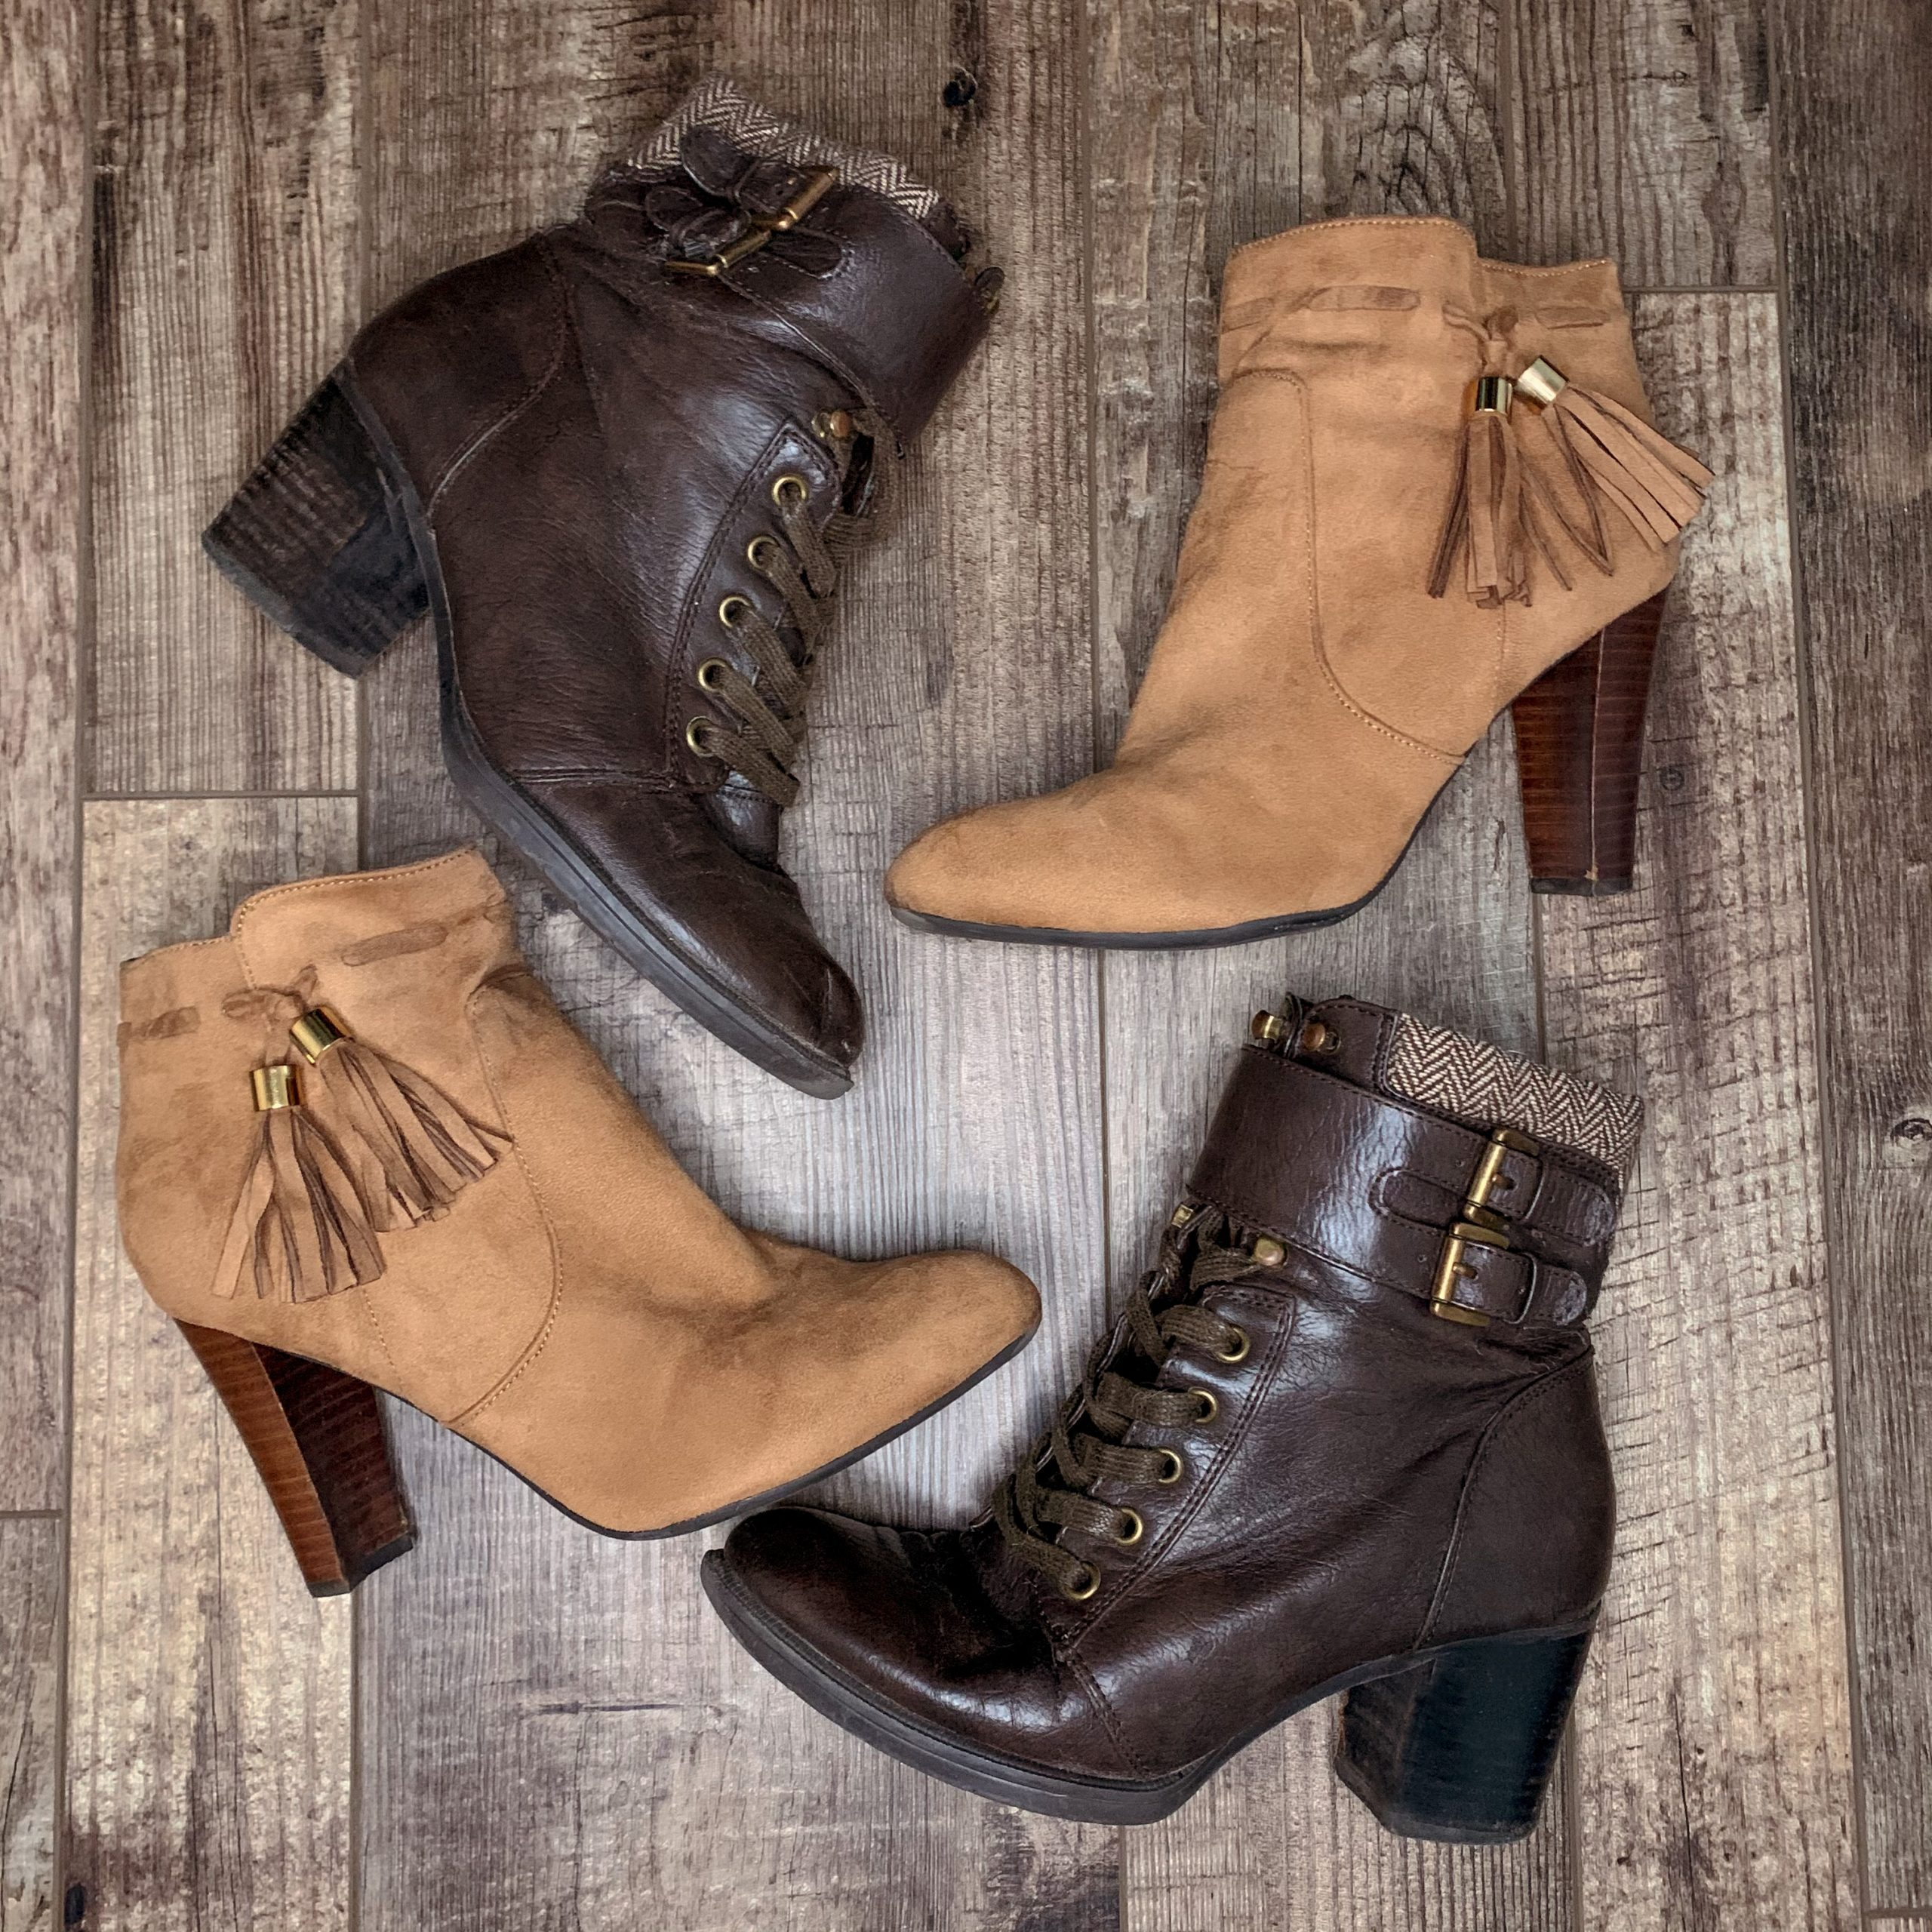 Brown Boots For Cheap And Cute Boots For Women Under $100